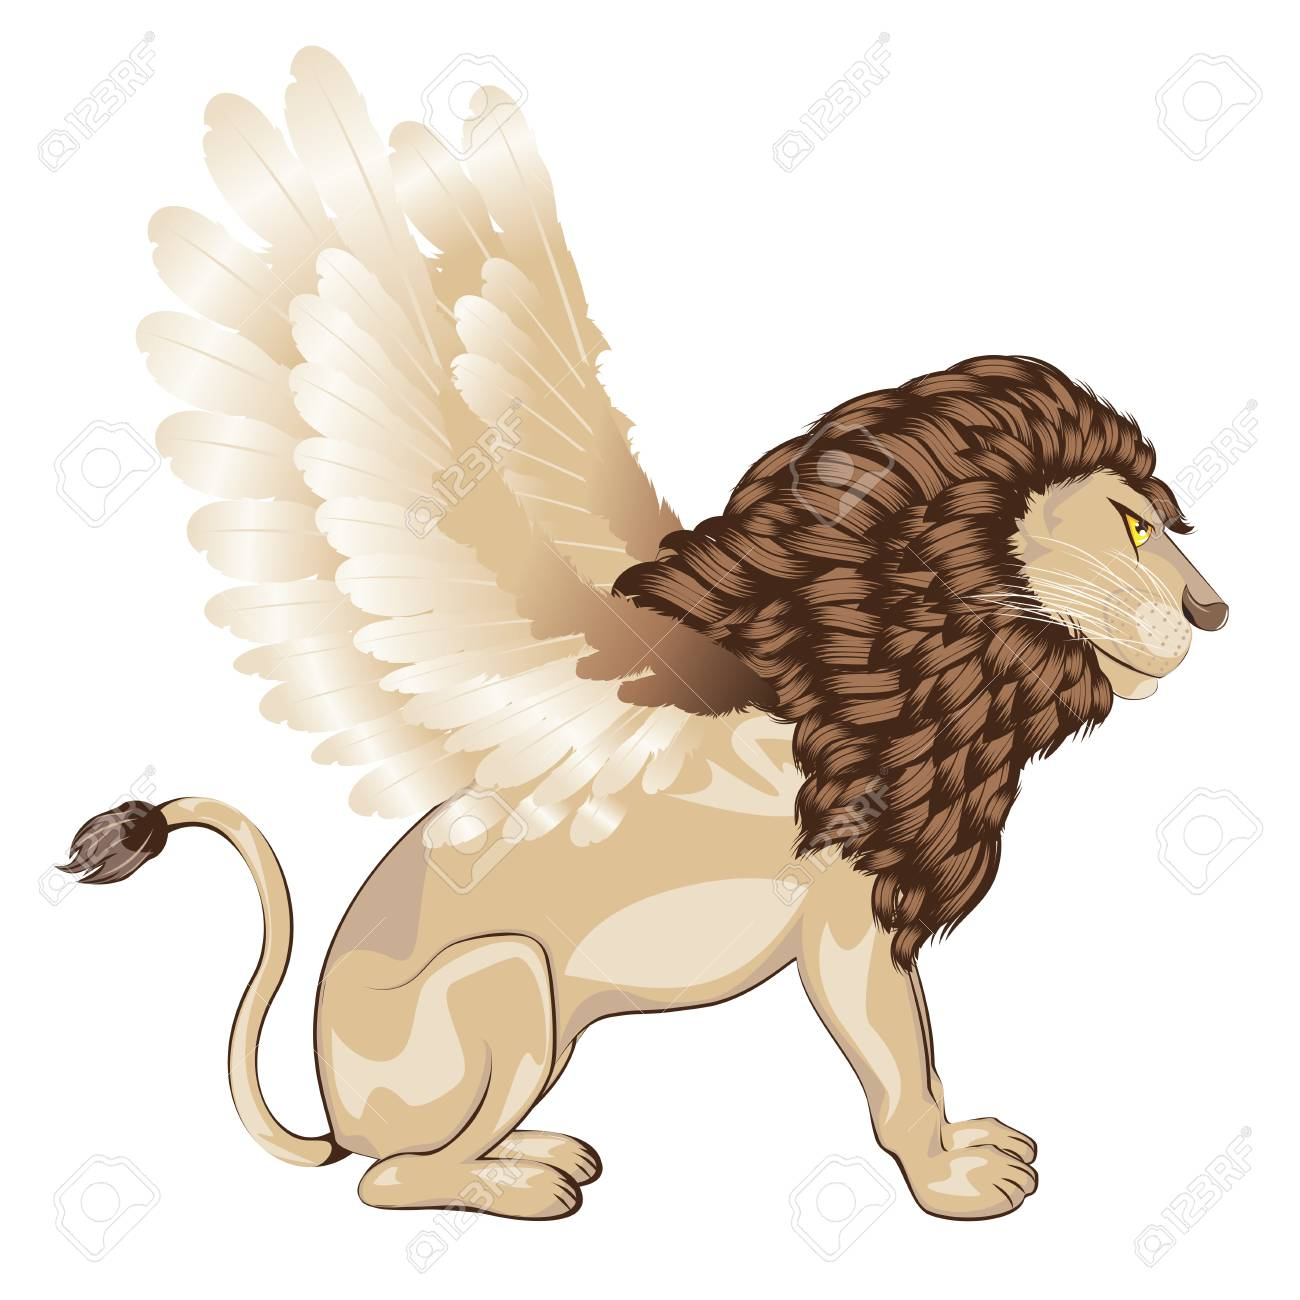 Image result for lion bird animal